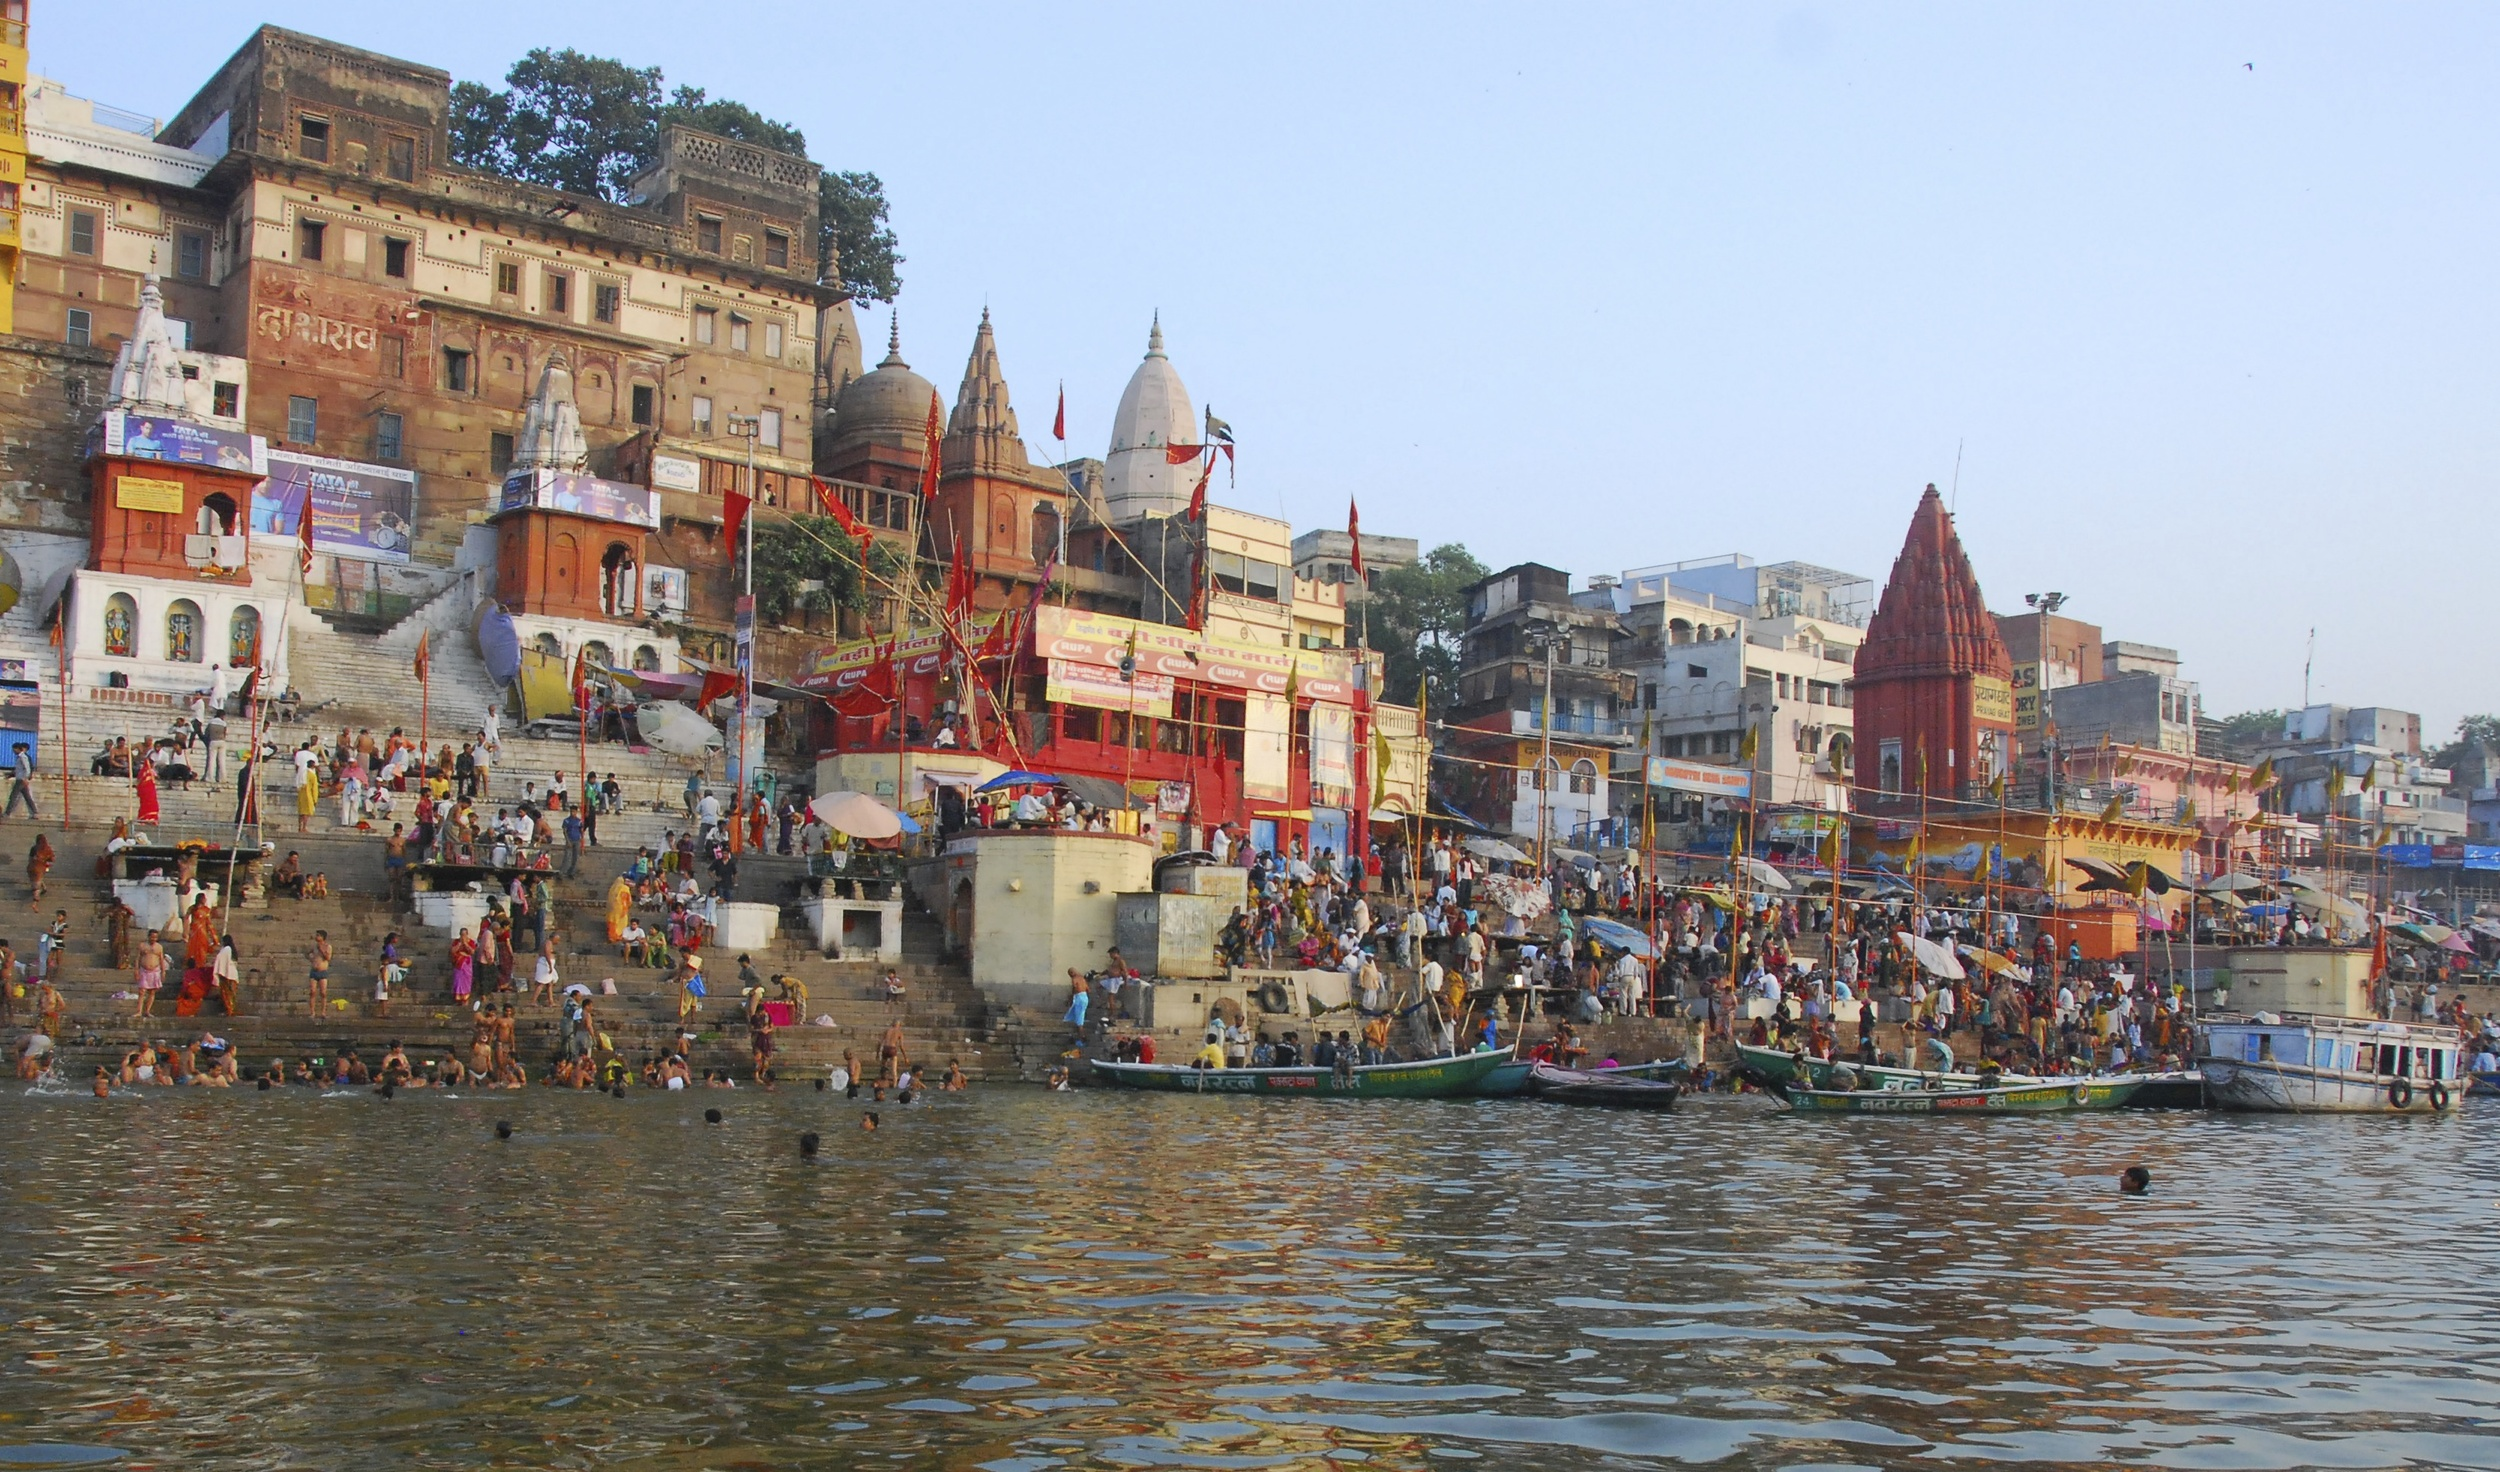 One of the many ghats along the banks of the Ganges.